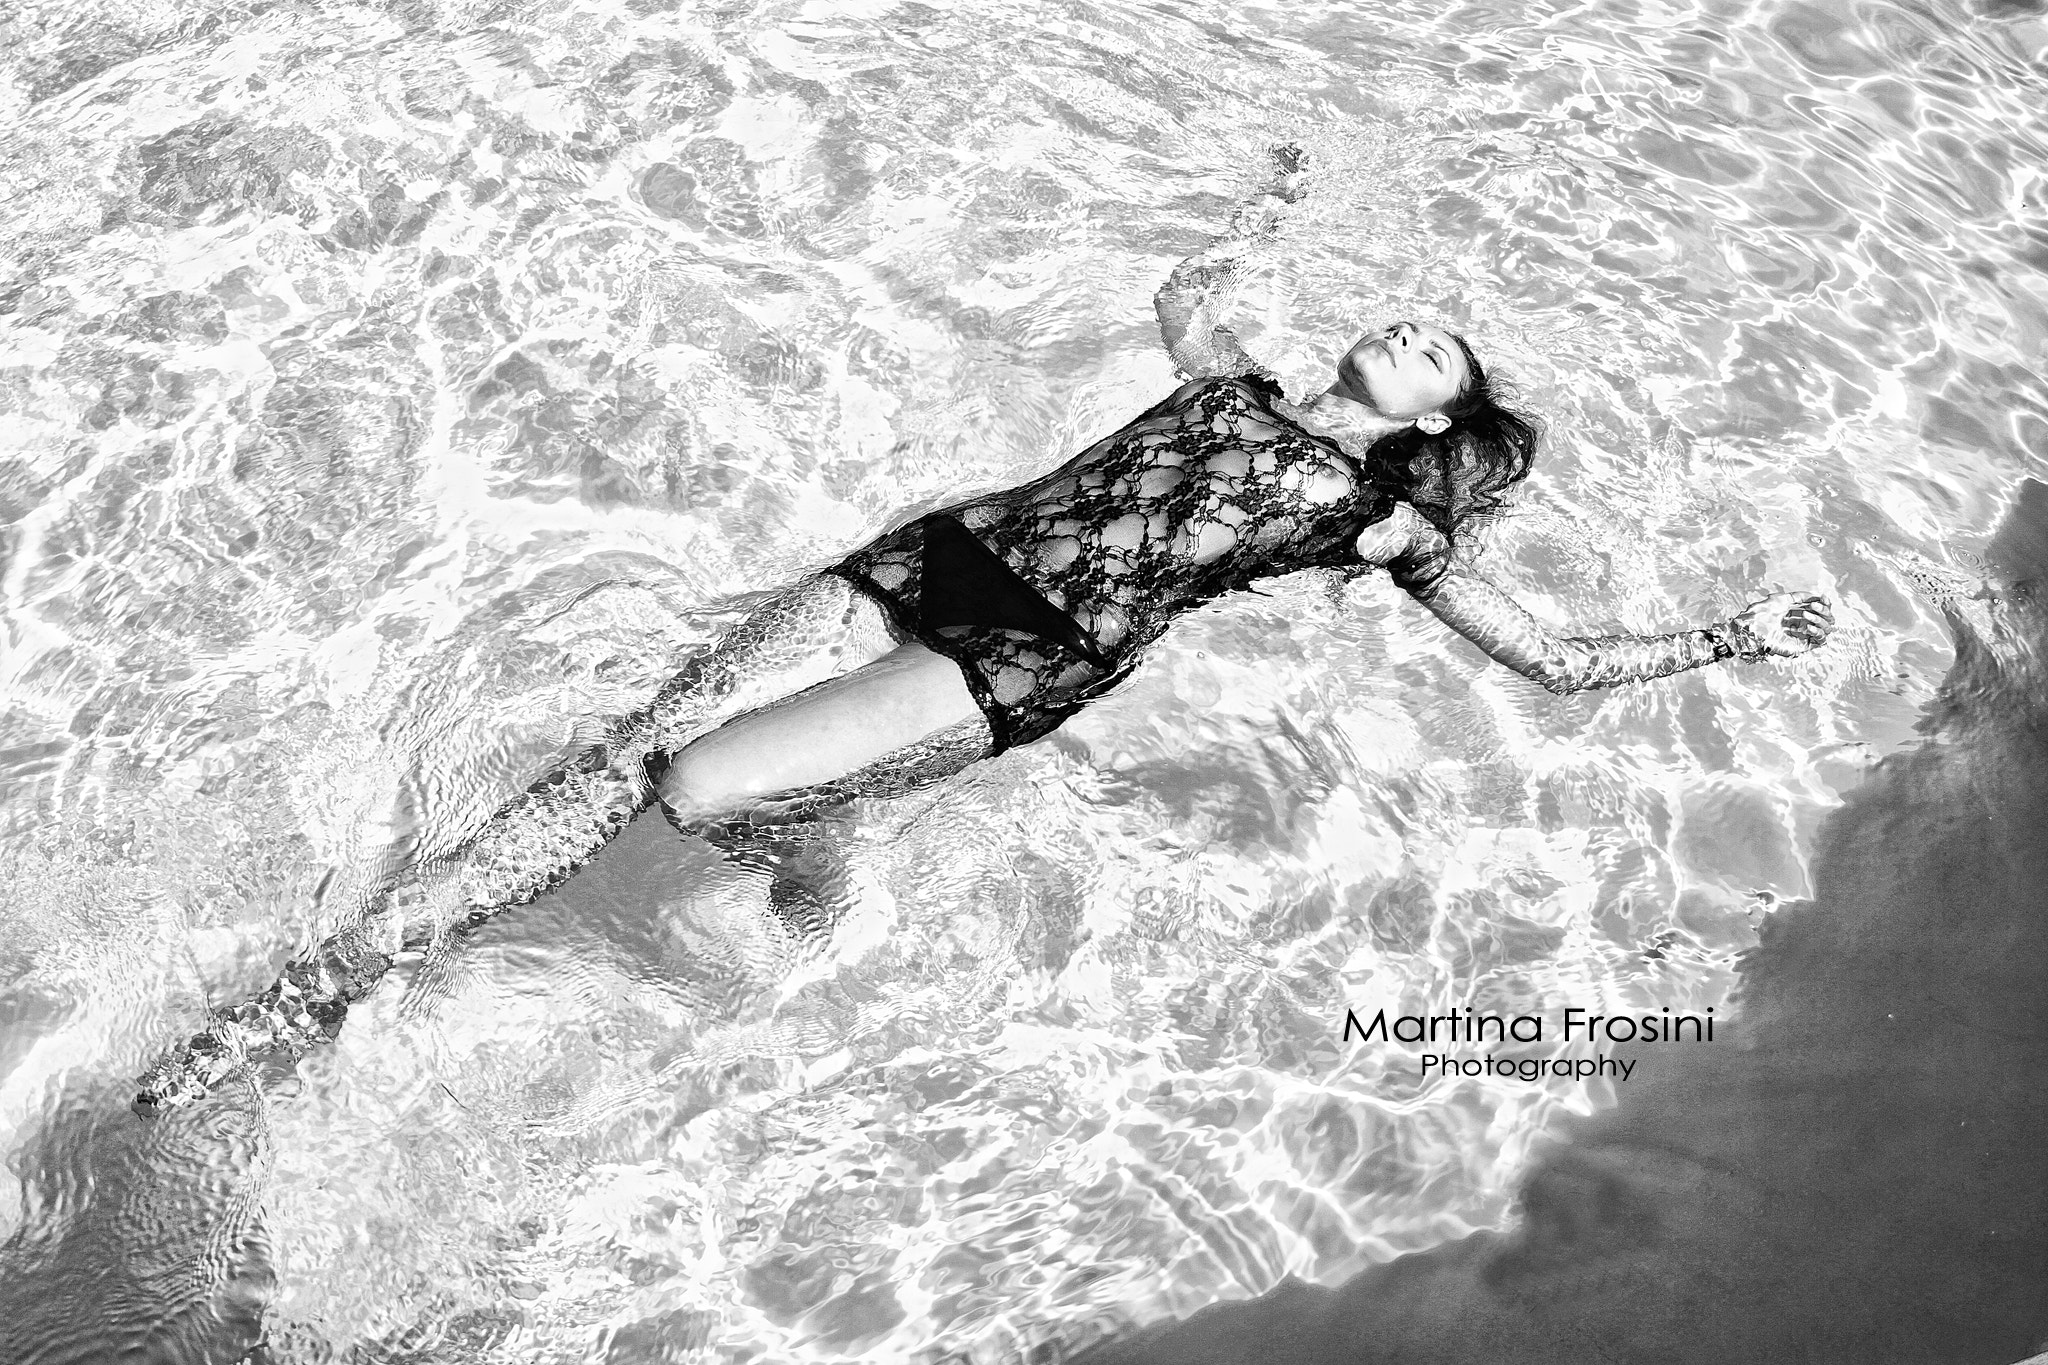 Photograph Florina The Waterproof by Martina Frosini on 500px